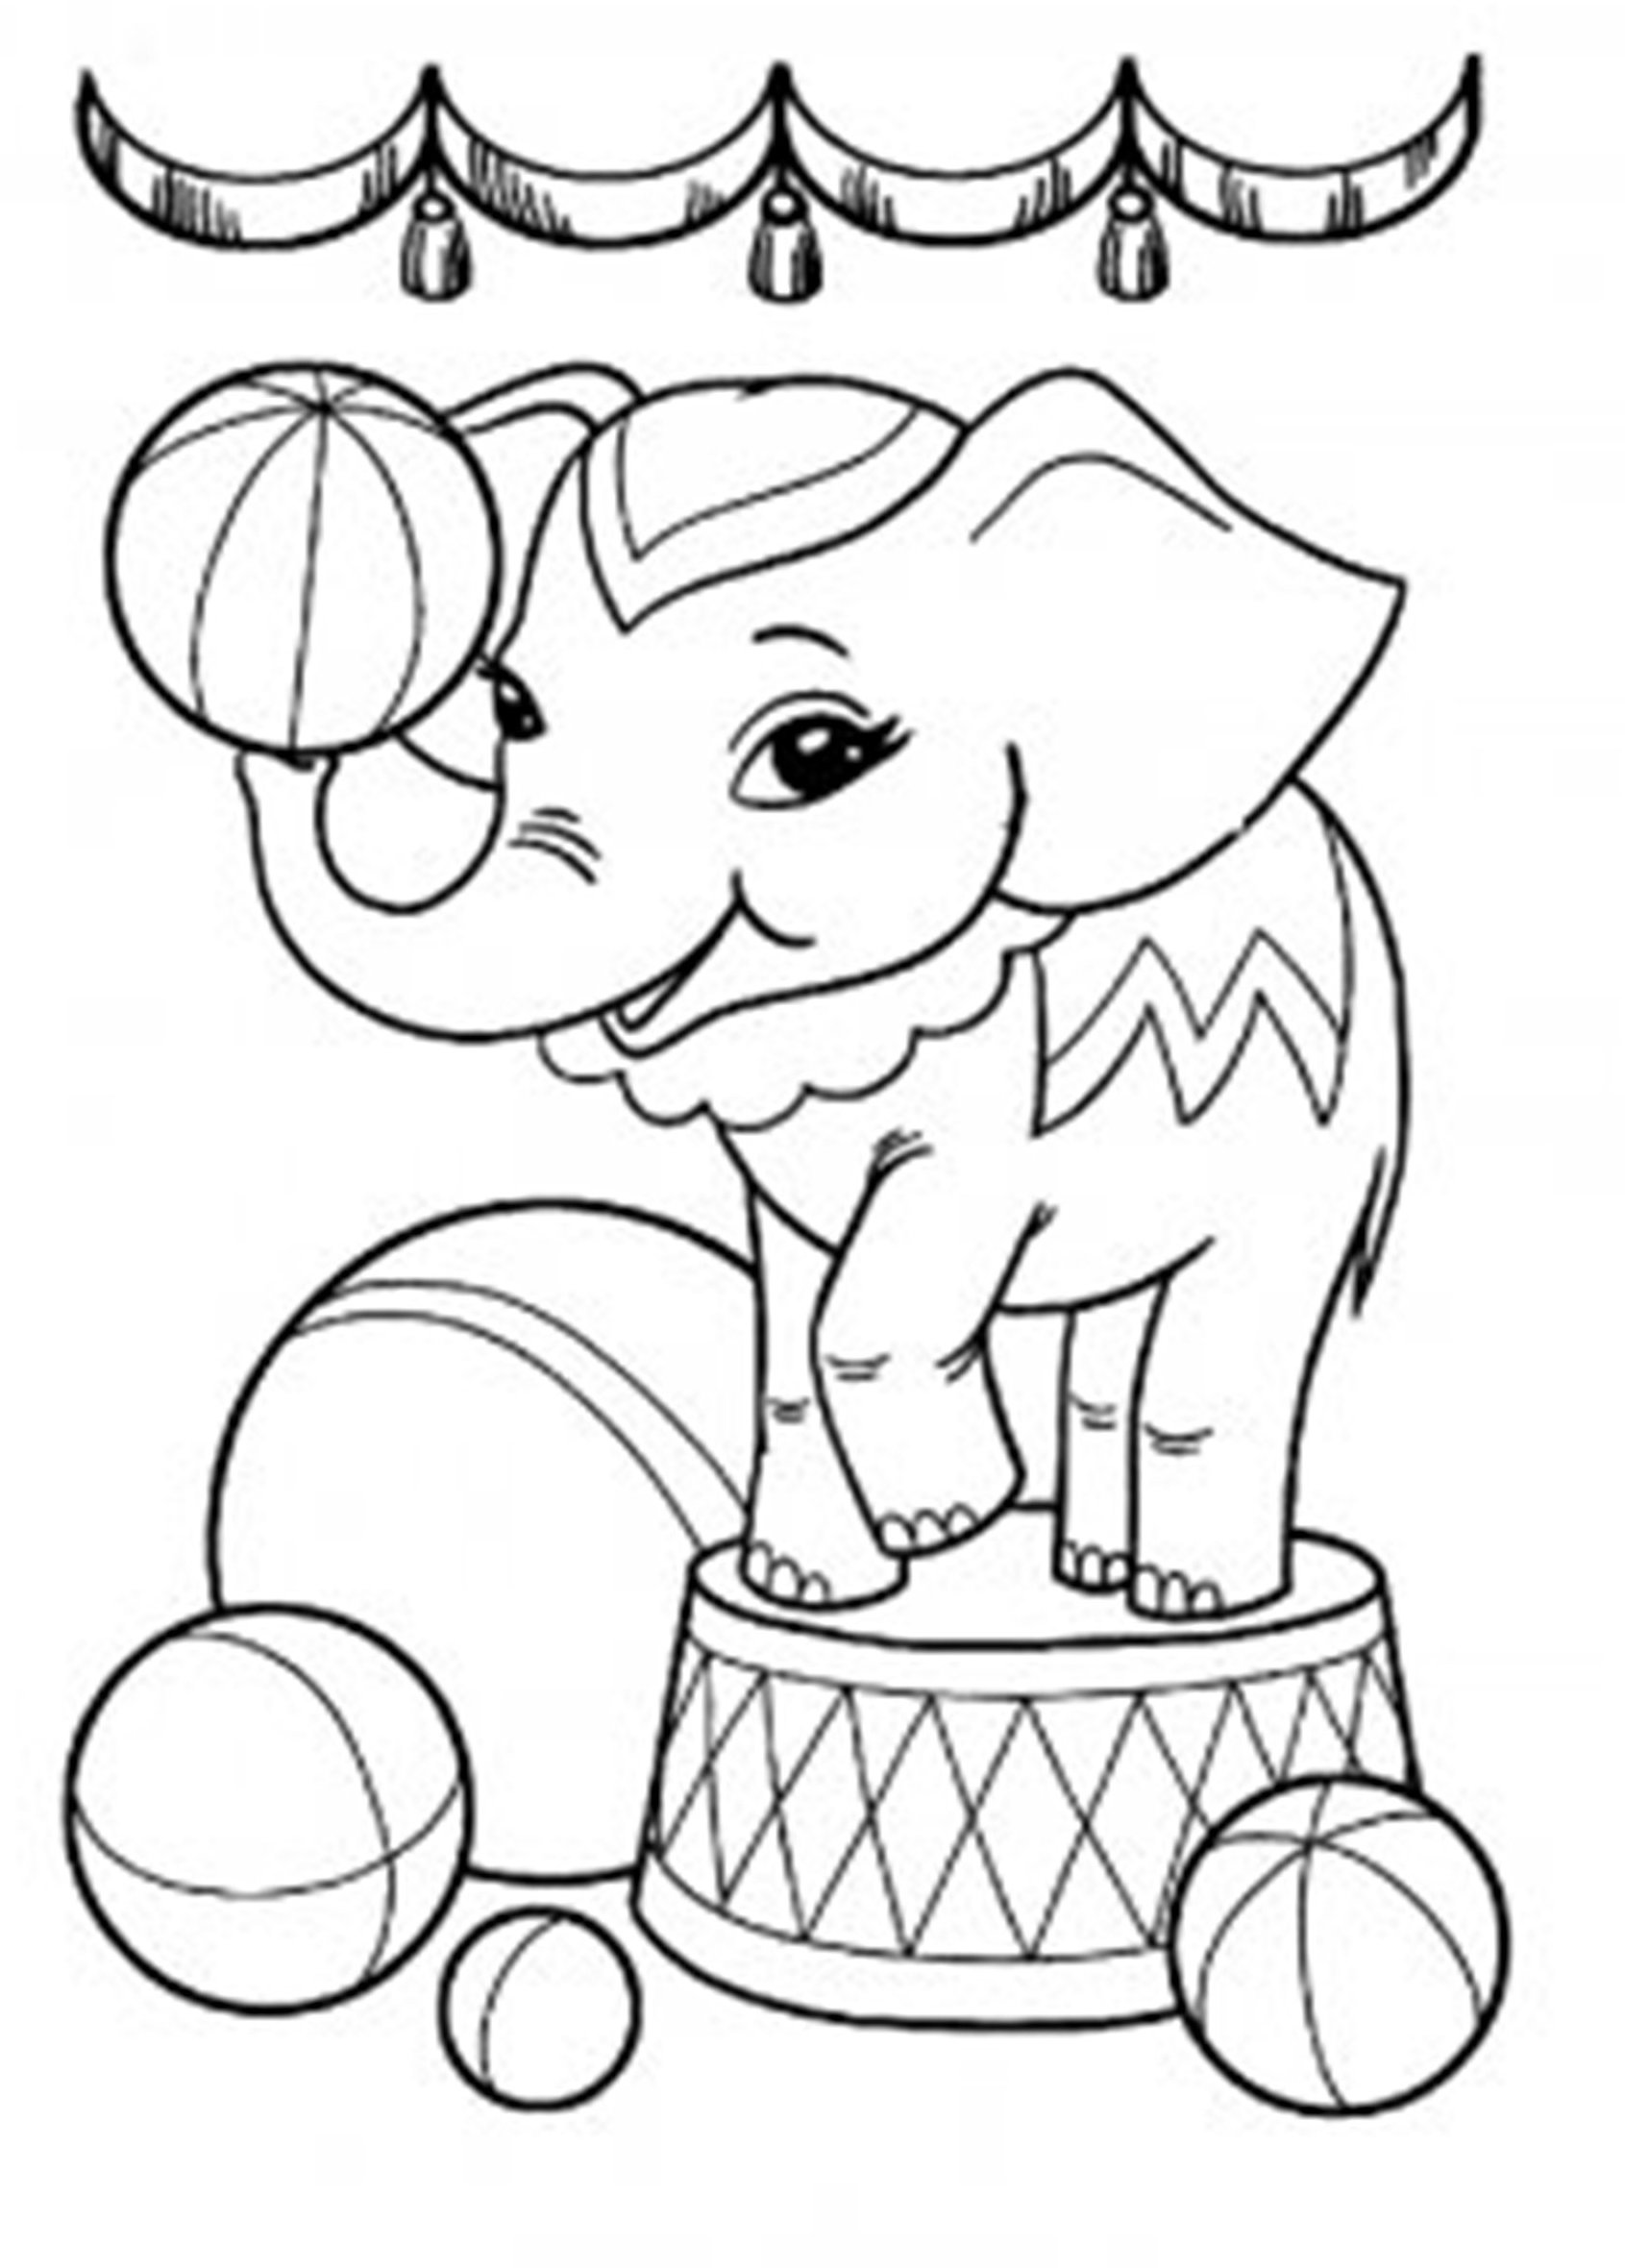 coloring pages for children horse coloring pages for kids coloring pages for kids pages for coloring children